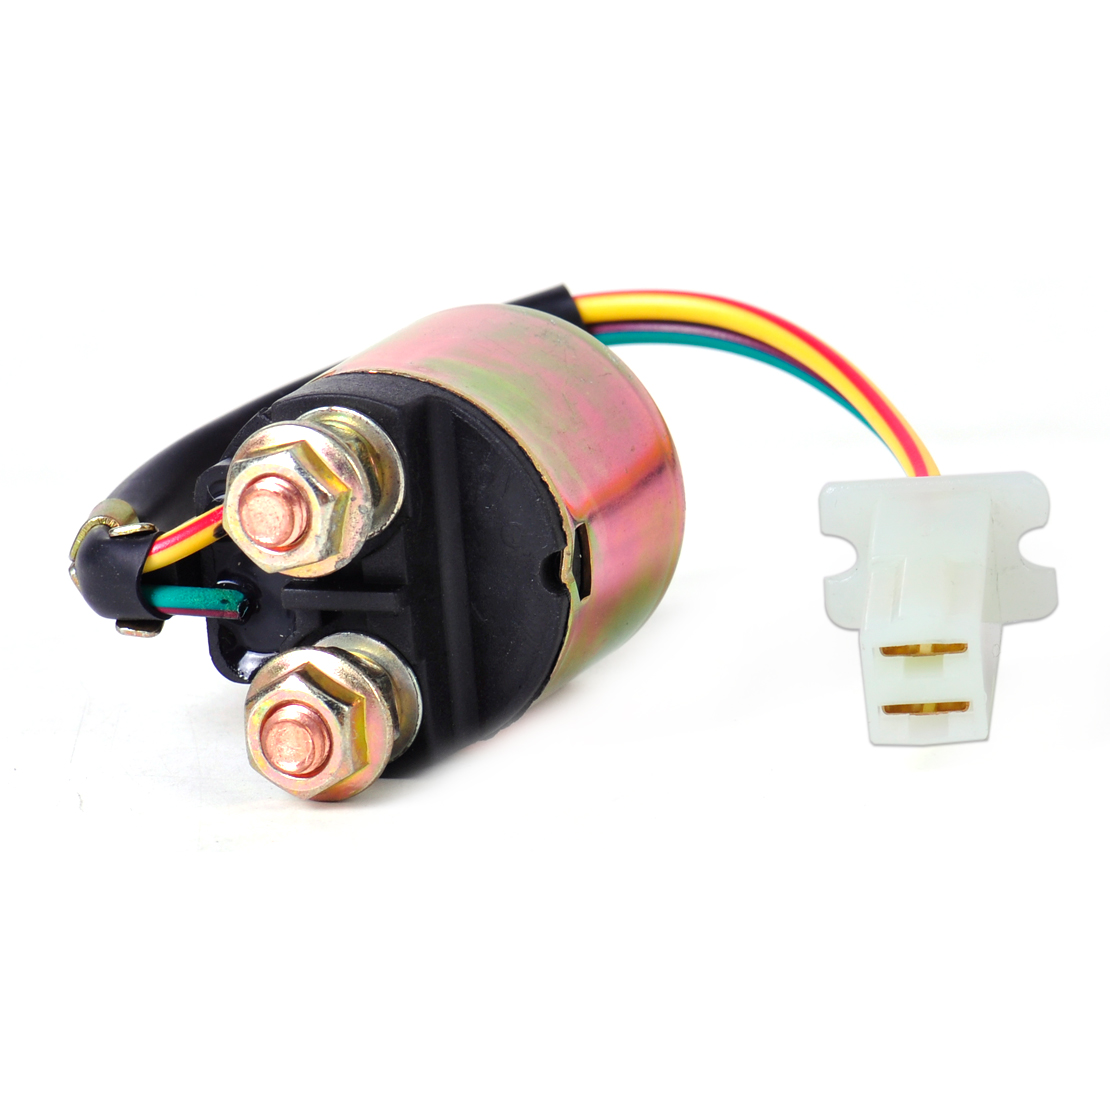 CITALL 1Pc 2 Wire Plug Connection Starter Relay Solenoid 3AY 81940 on 6 wire plug, 2 wire relay, 2wire 12v plug, 2 wire capacitor, 2 wire usb, 2 wire light, 2 wire ring, 2 wire motor, 4 wire plug, 2 wire tubing, 2 wire control, 2 wire connector, wiring plug to plug, 2 wire twist, 2 wire outlet, 2 wire starter, 2 wire pump, 2 wire thermostat, 2 wire coupler, correct wiring of a plug,